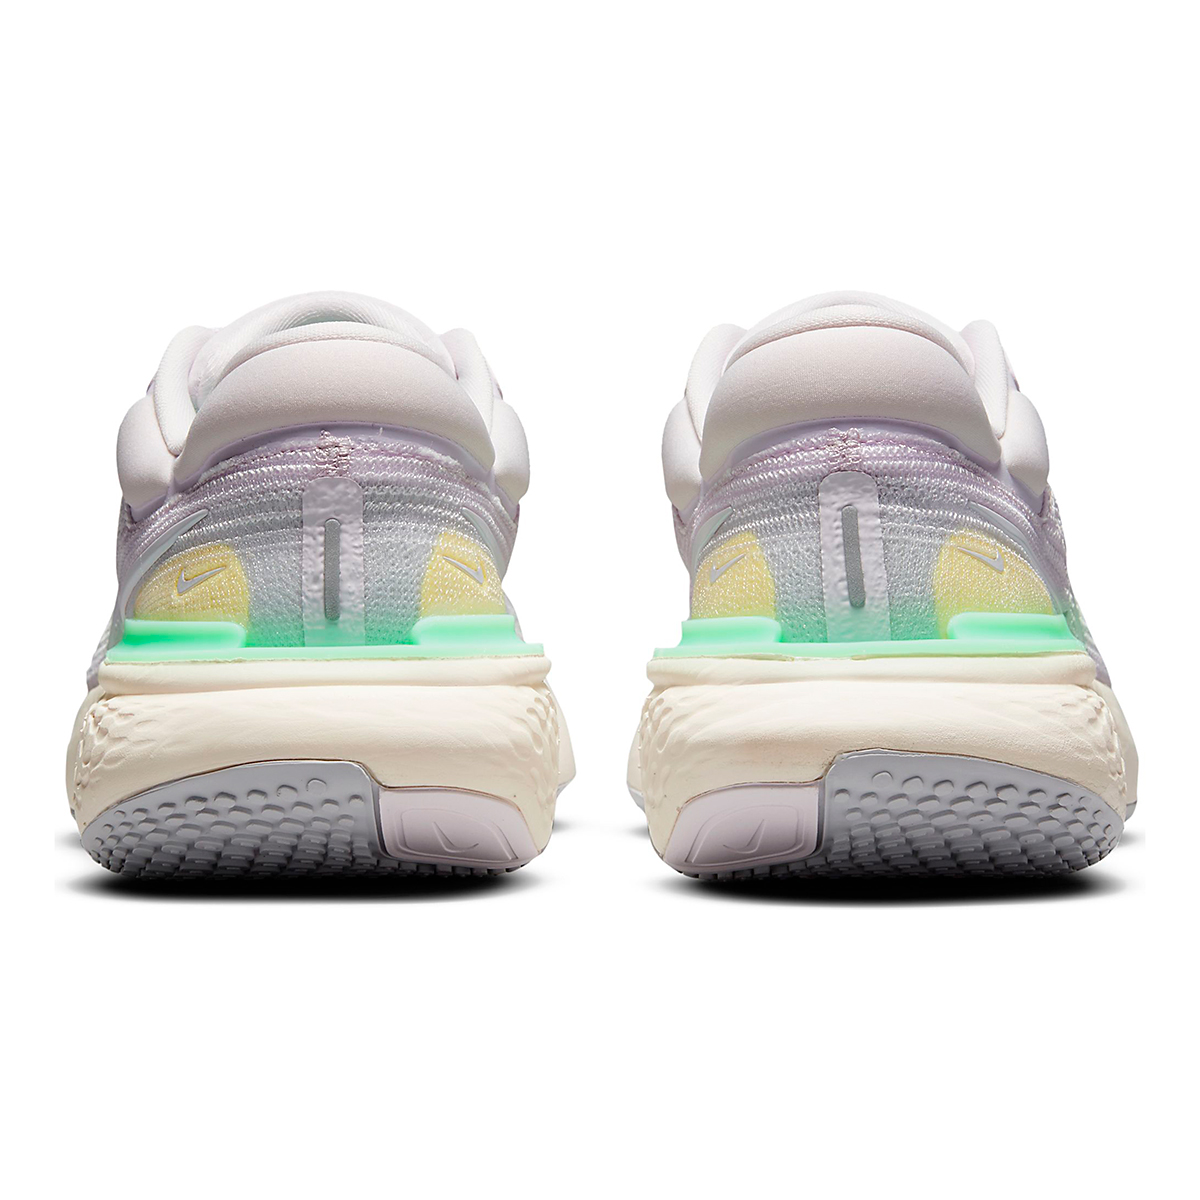 Women's Nike Zoomx Invincible Run FlyKnit Running Shoe - Color: Light Violet/White/Infinite Lilac - Size: 5 - Width: Regular, Light Violet/White/Infinite Lilac, large, image 5